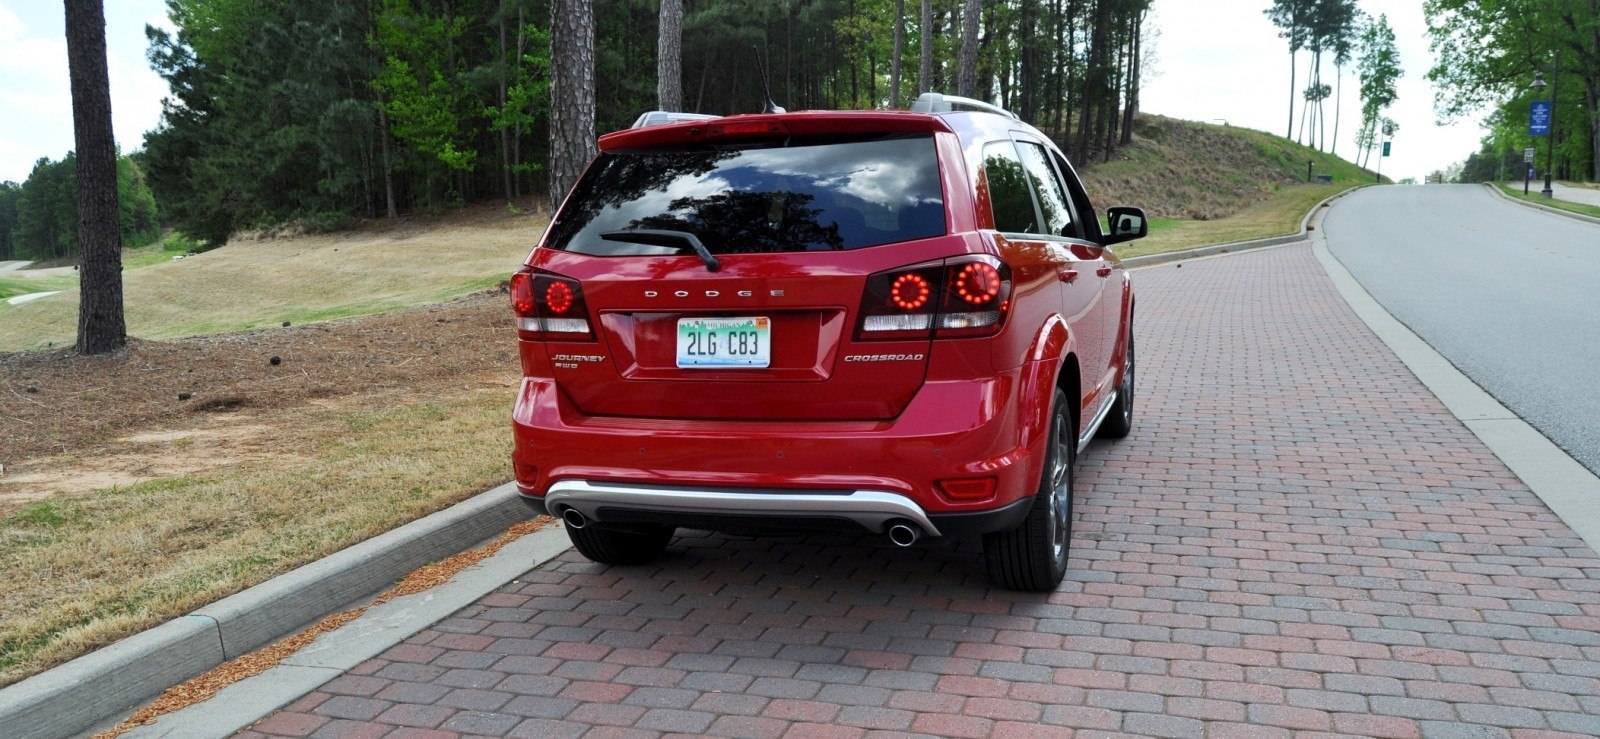 road test review 2014 dodge journey crossroad we would cross the road to avoid 14. Black Bedroom Furniture Sets. Home Design Ideas